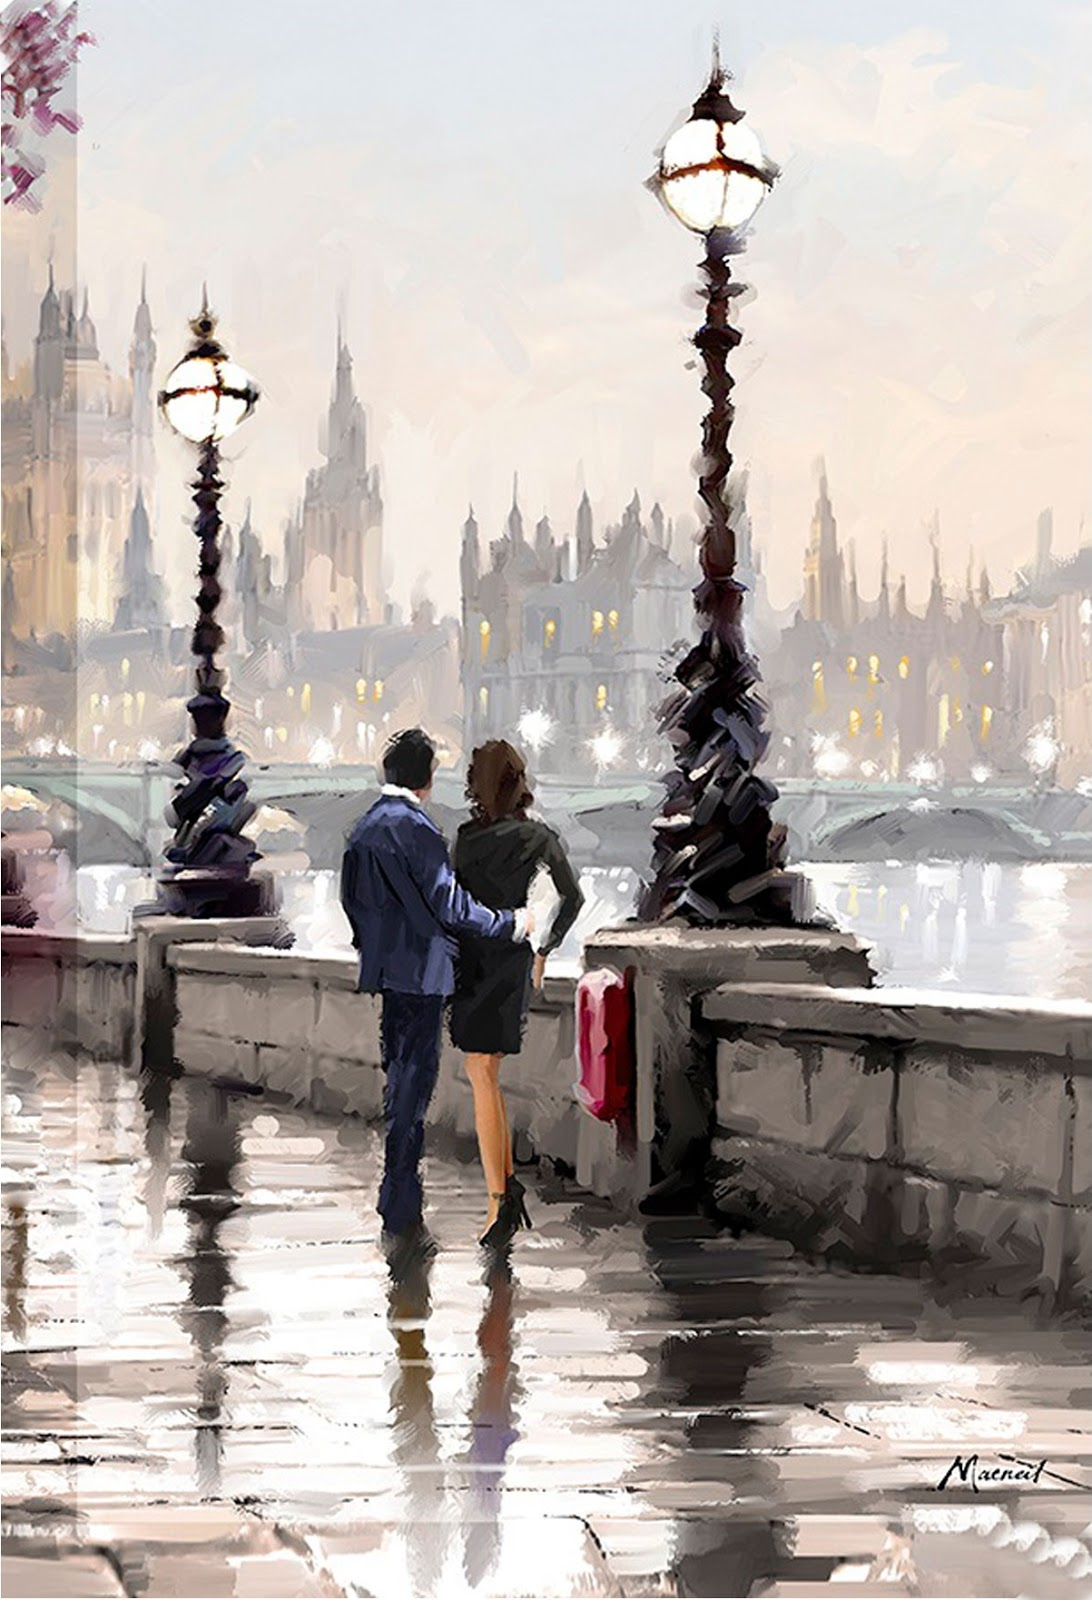 Richard Macneil View from the Embankment